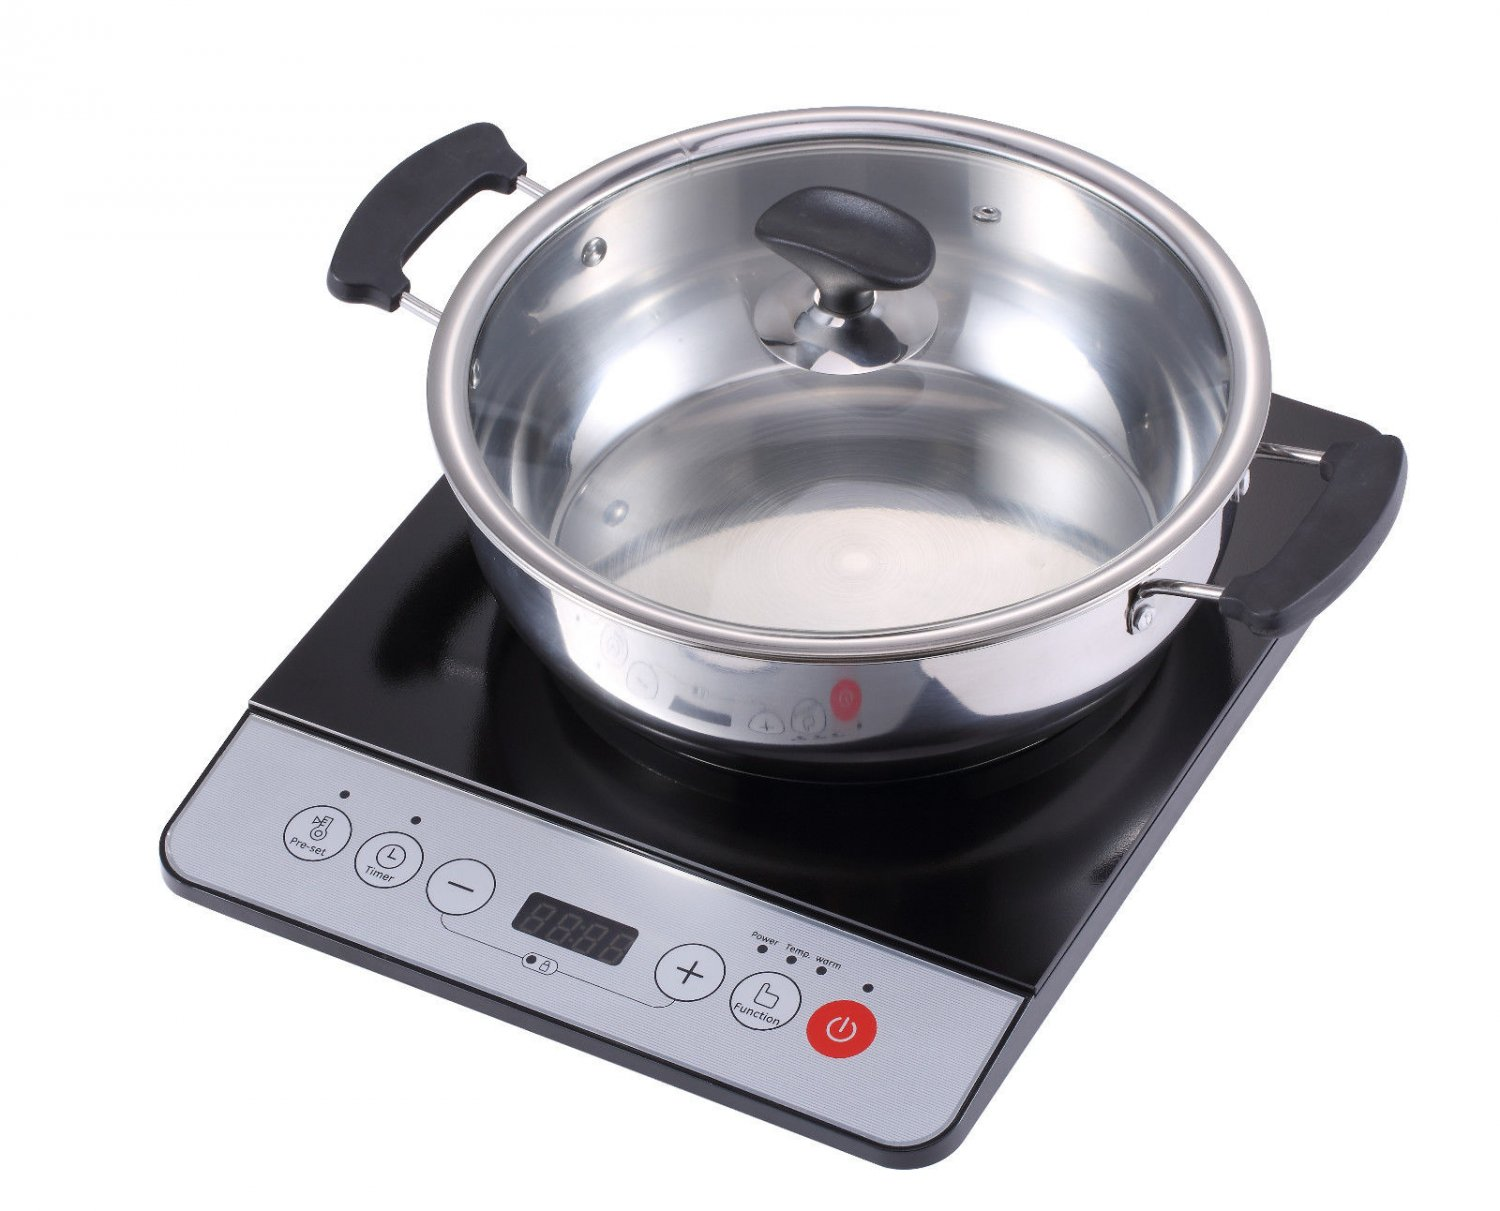 New midea 1500w induction cooktop cooker with stainless for Table induction